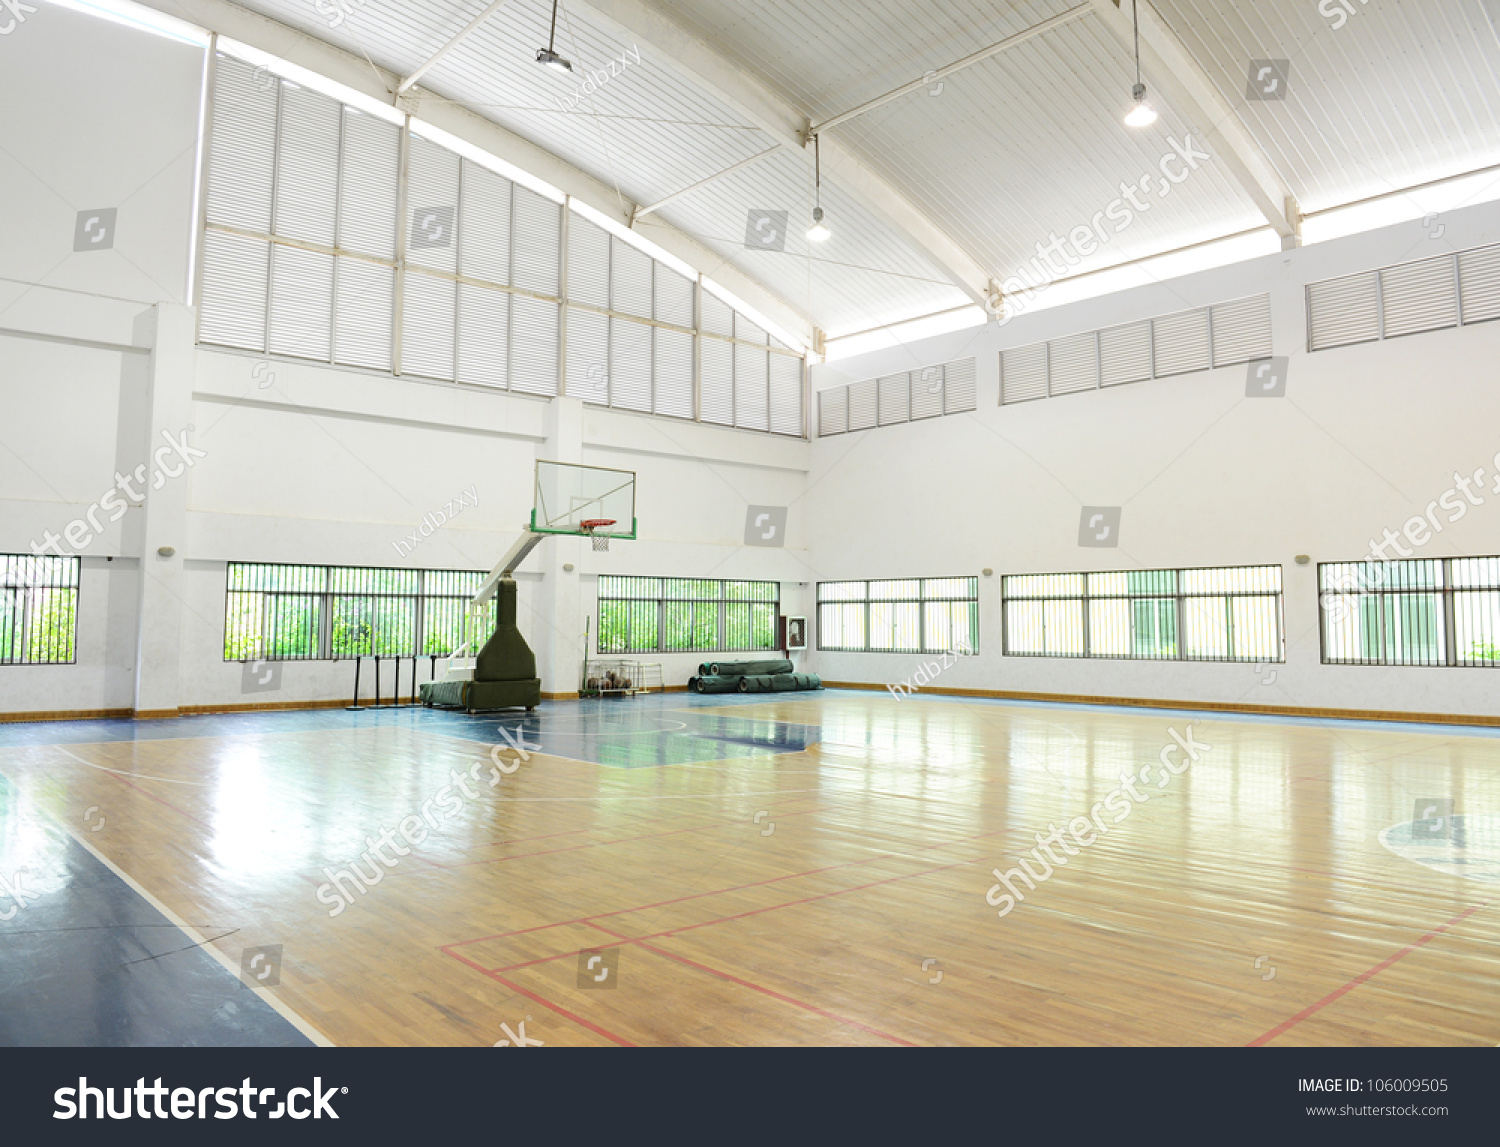 Royalty-free Basketball court, school gym indoor. #106009505 Stock ...